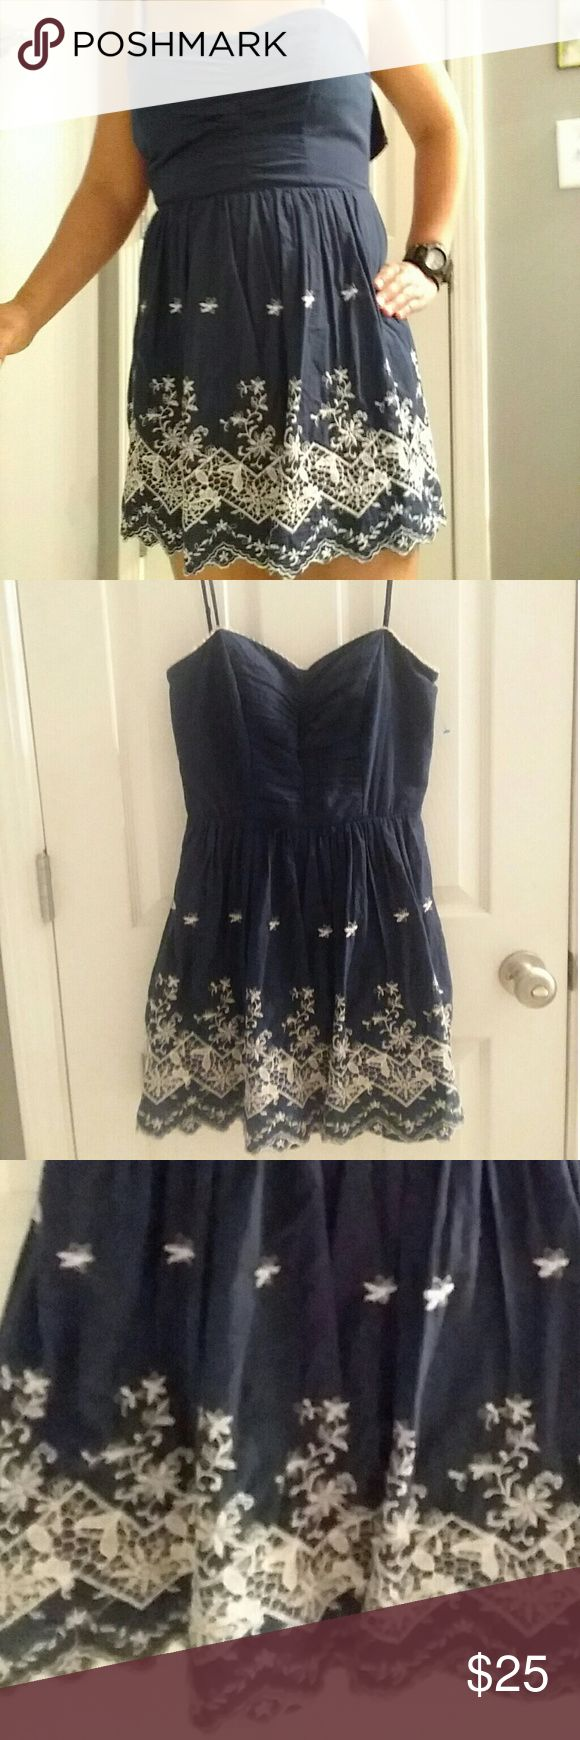 Speechless navy blue dress Very cute dress mini. Nice for going out. U can pair it with some nice sandals, boots, or flats.  Has a beautiful  crochet bottom. Casual Speechless Dresses Mini